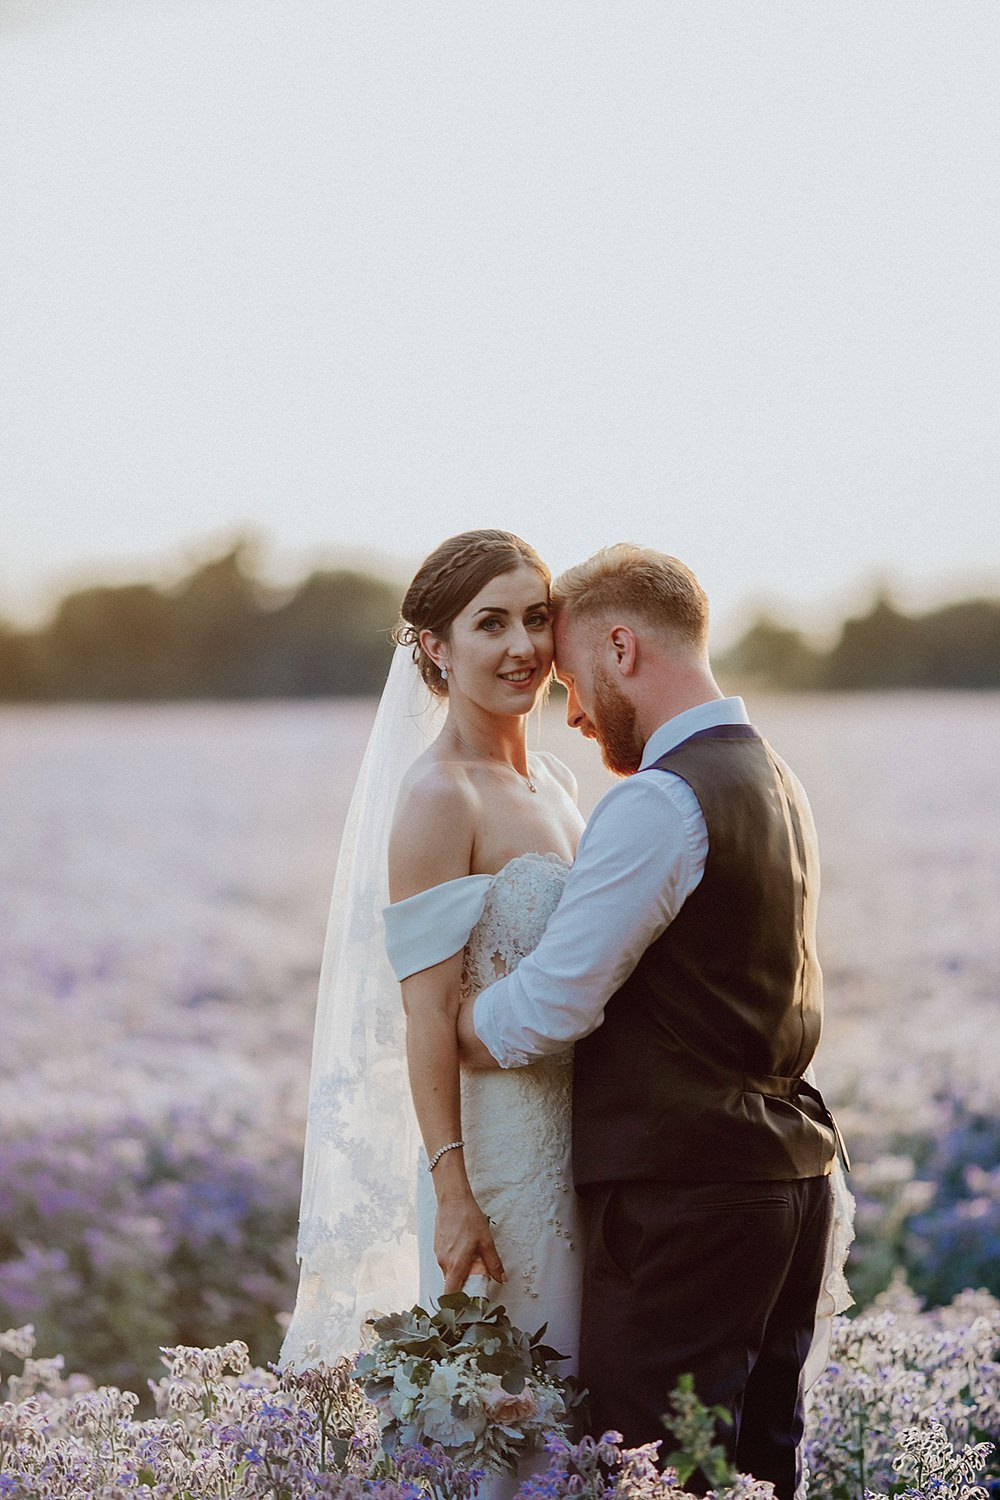 Relaxed & Fun Summer Farm Wedding with Portraits in the Lilac Fields